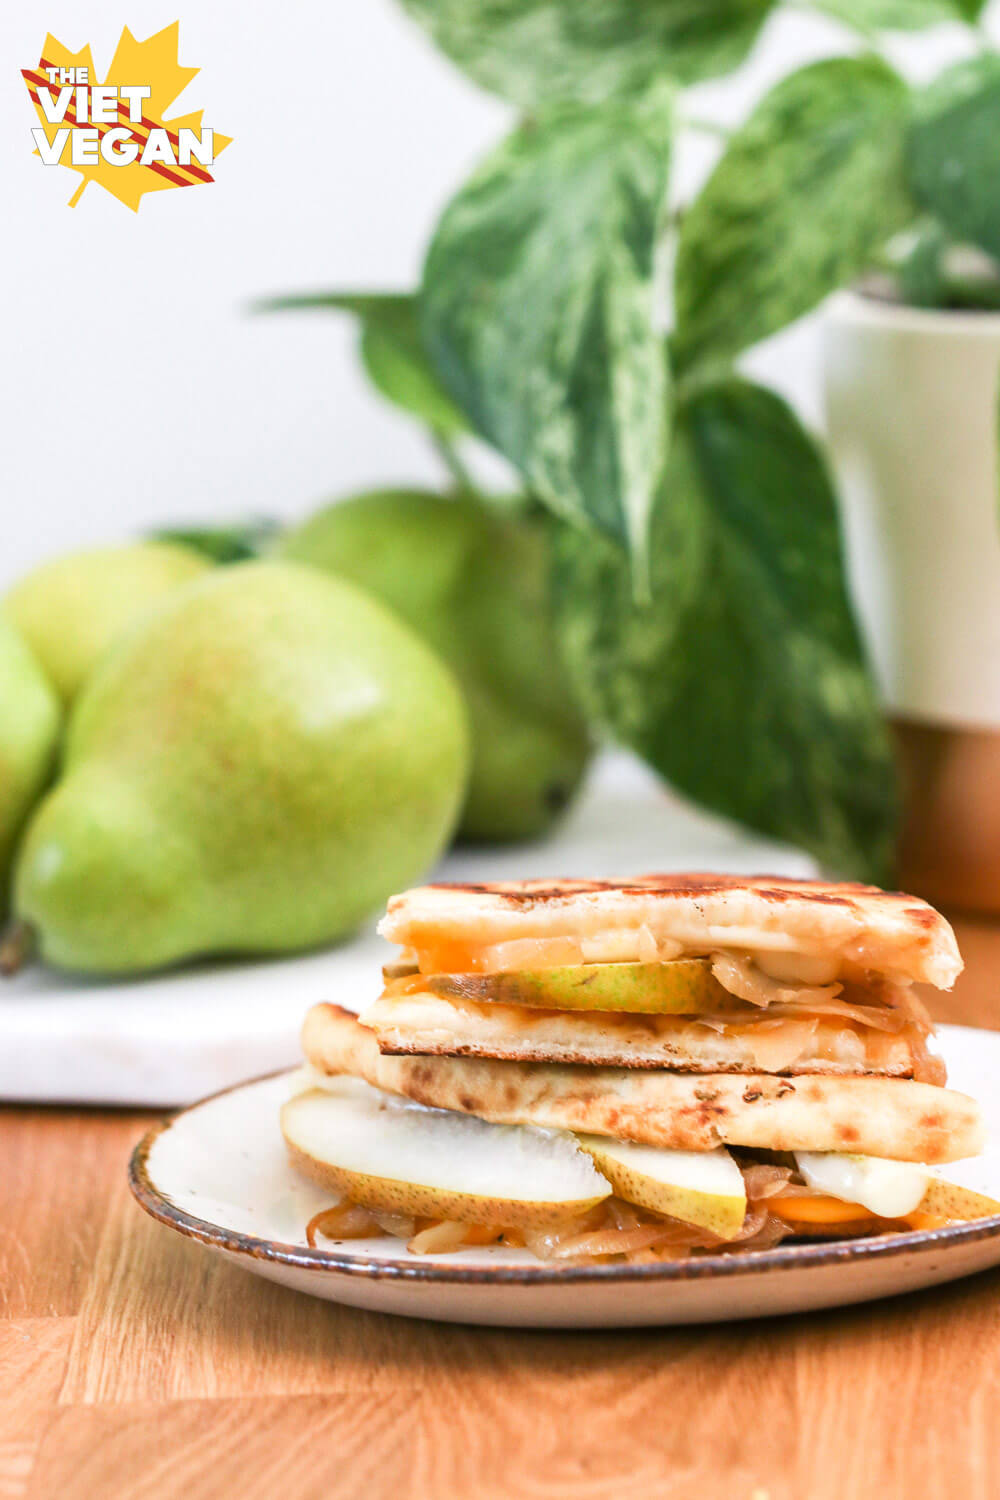 Vegan grilled cheese sandwich with pears and a plant in the background